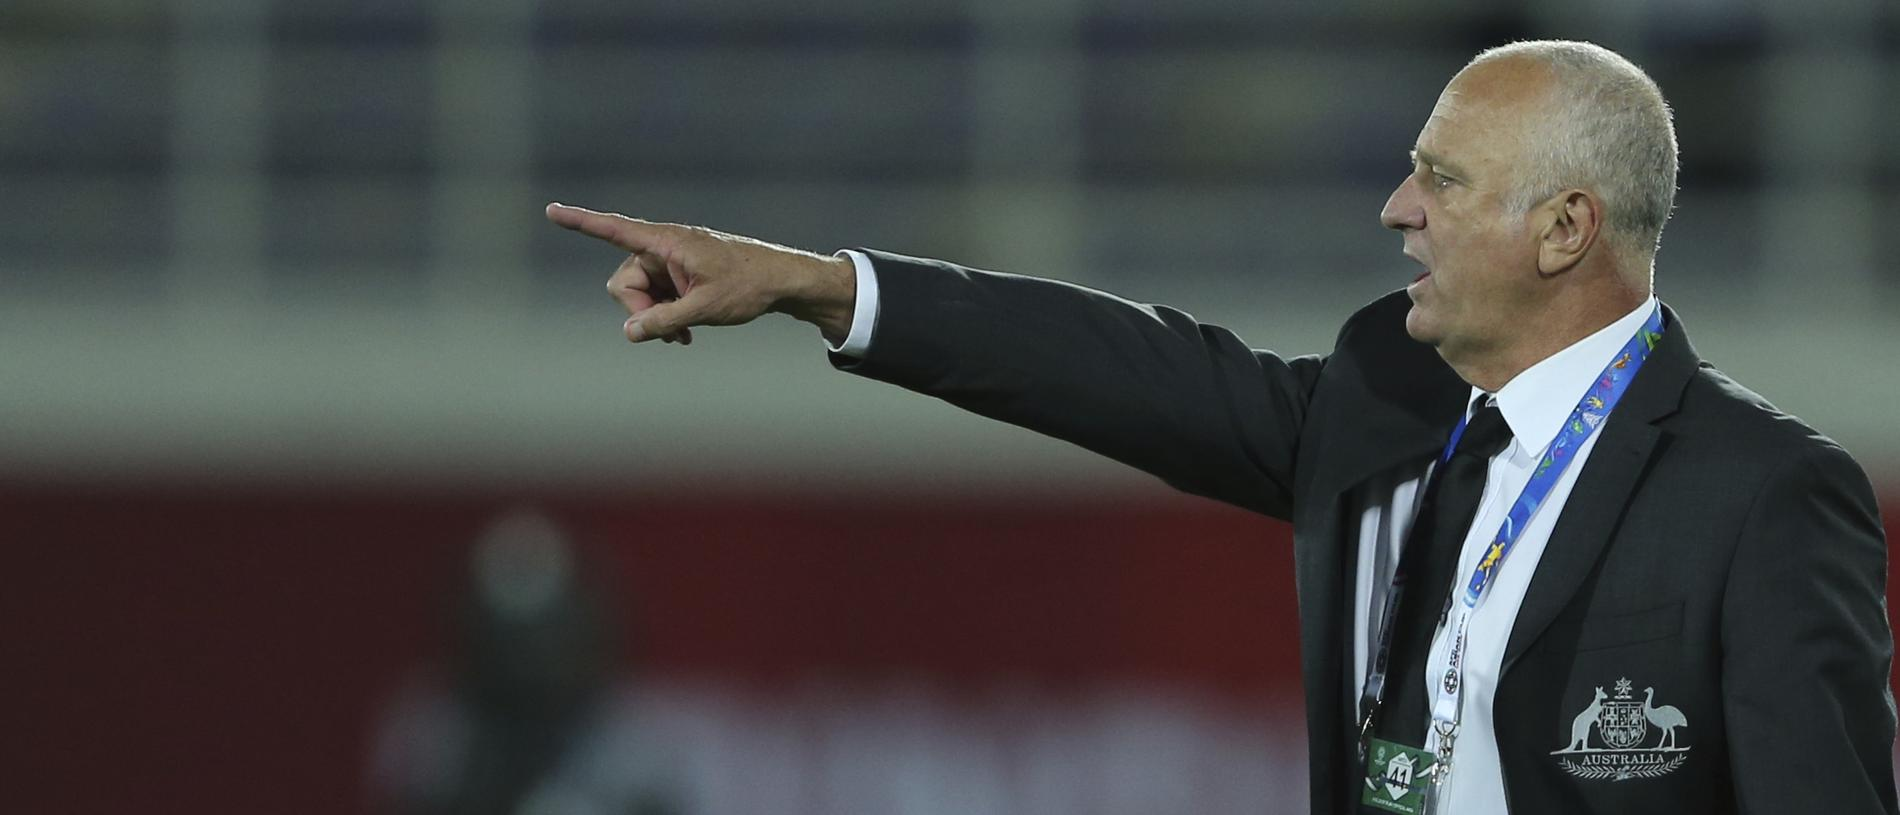 Australia's head coach Graham Arnold gives instructions from the side line during the AFC Asian Cup round of 16 soccer match between Australia and Uzbekistan at the Khalifa bin Zayed Stadium in Al Ain, United Arab Emirates, Monday, Jan. 21, 2019. (AP Photo/Kamran Jebreili)